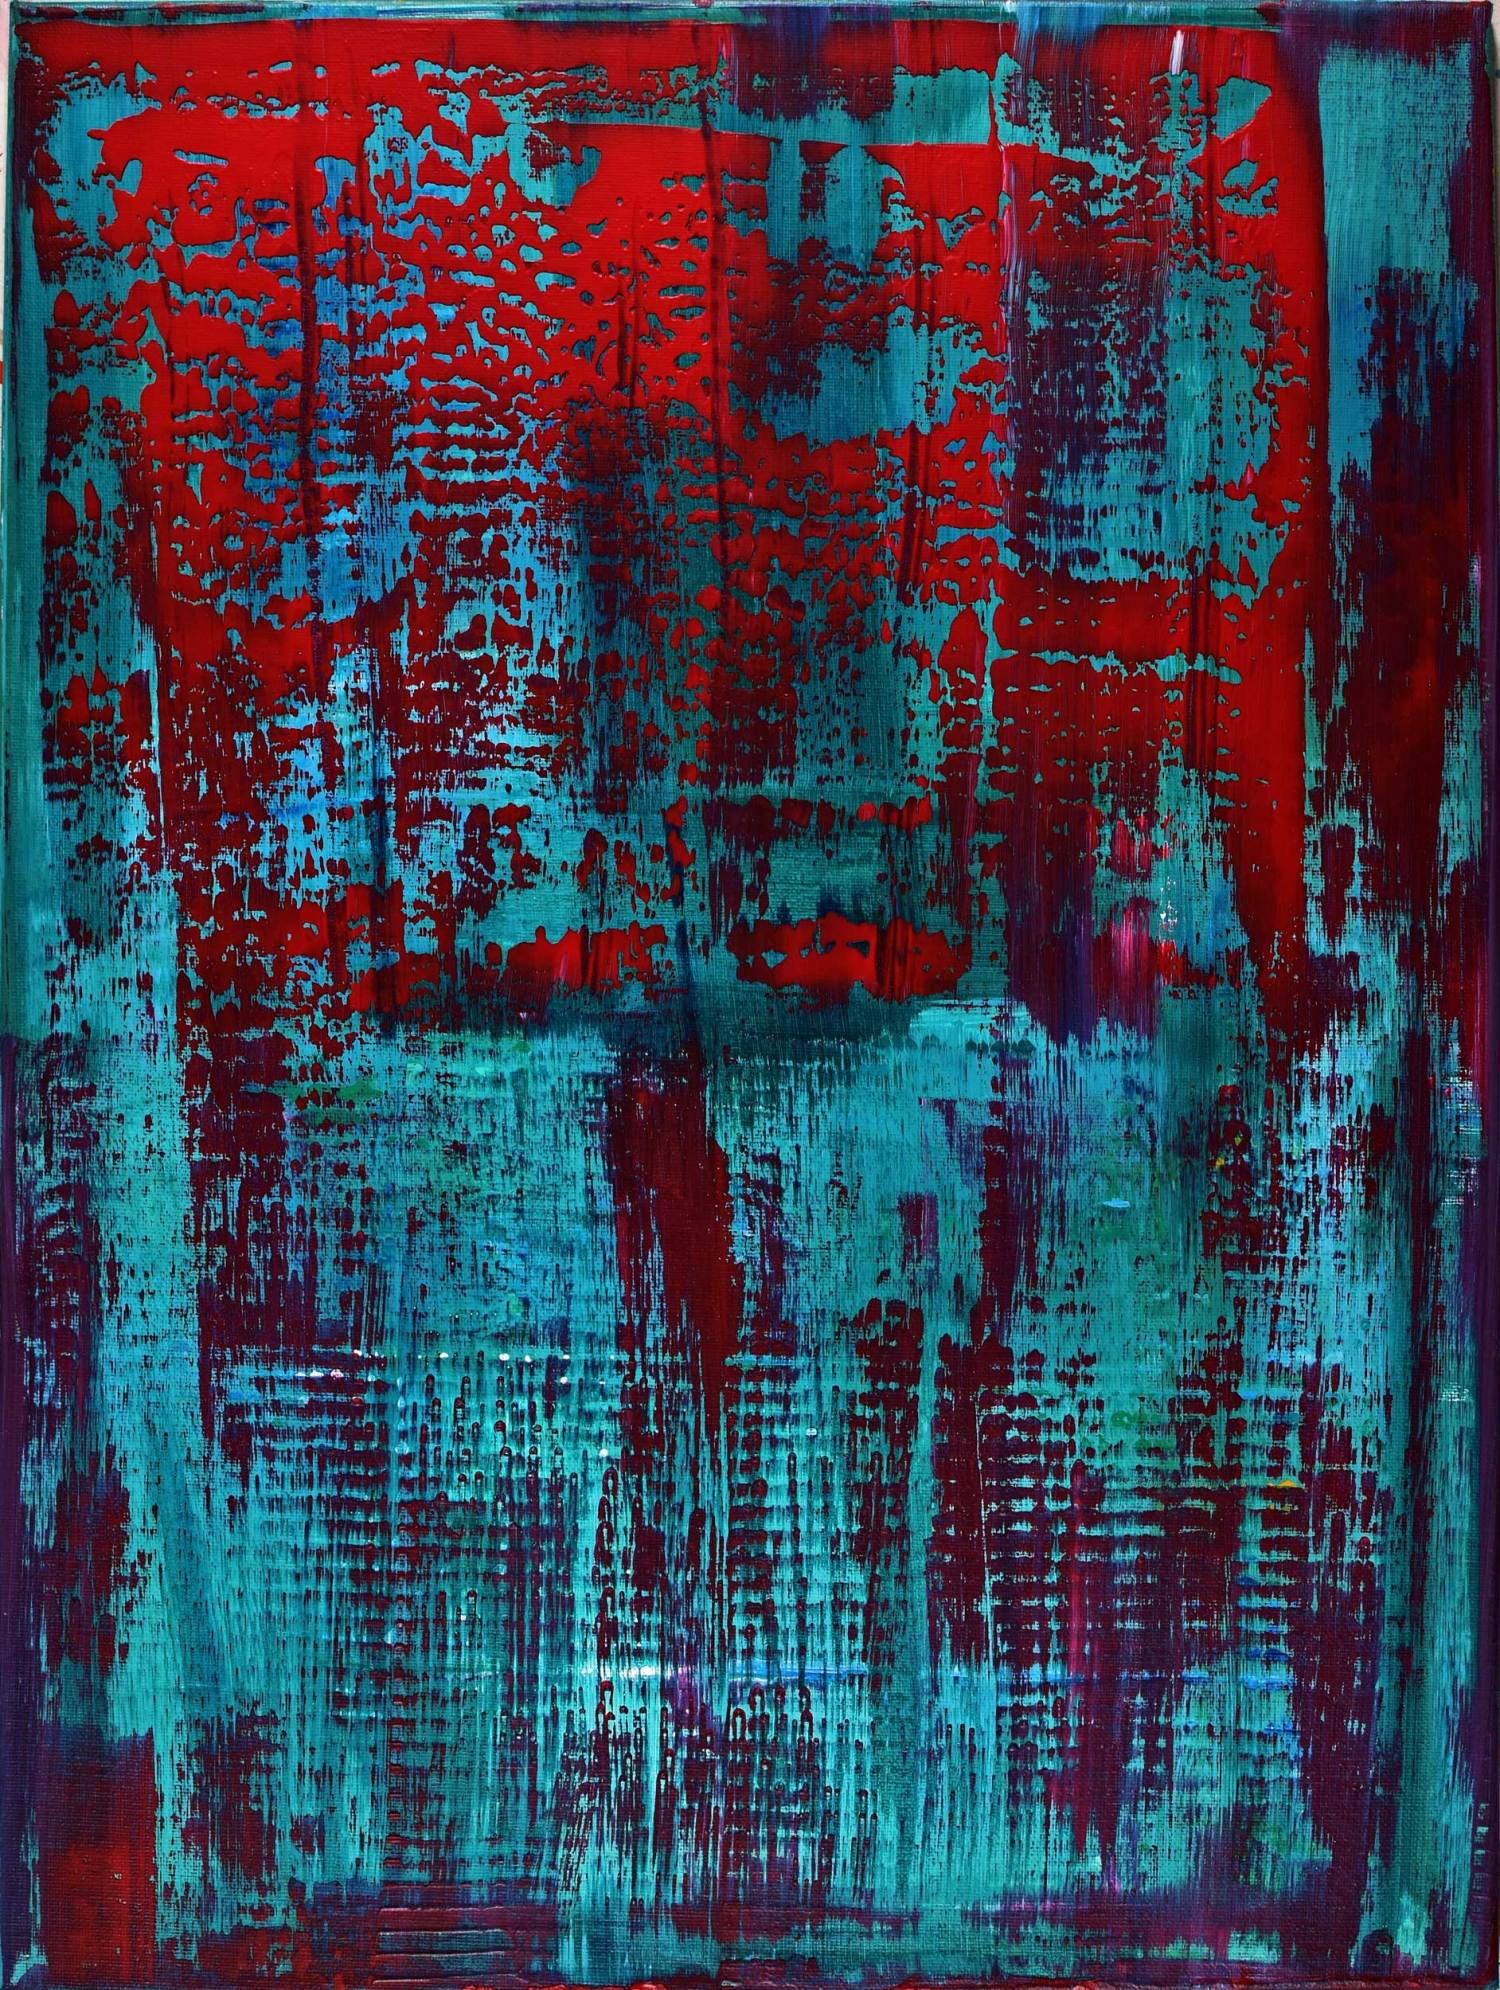 SOLD Shadowy Spectra (2015) Acrylic painting by Nestor Toro in Los Angeles